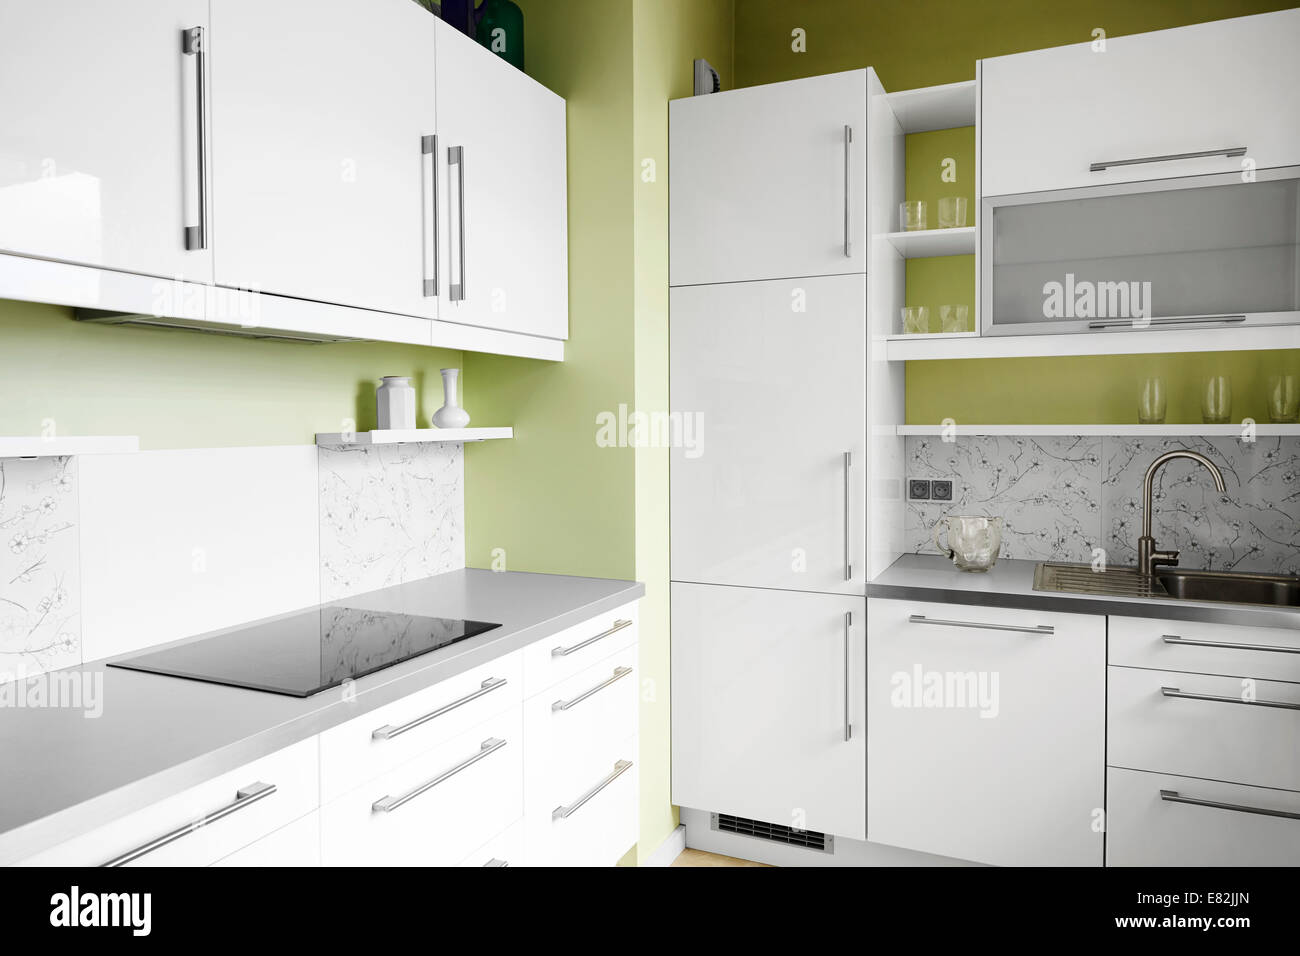 countertop background. Empty Simplicity Kitchen In White And Pistachio Colors. Can Be Used As A Background Countertop